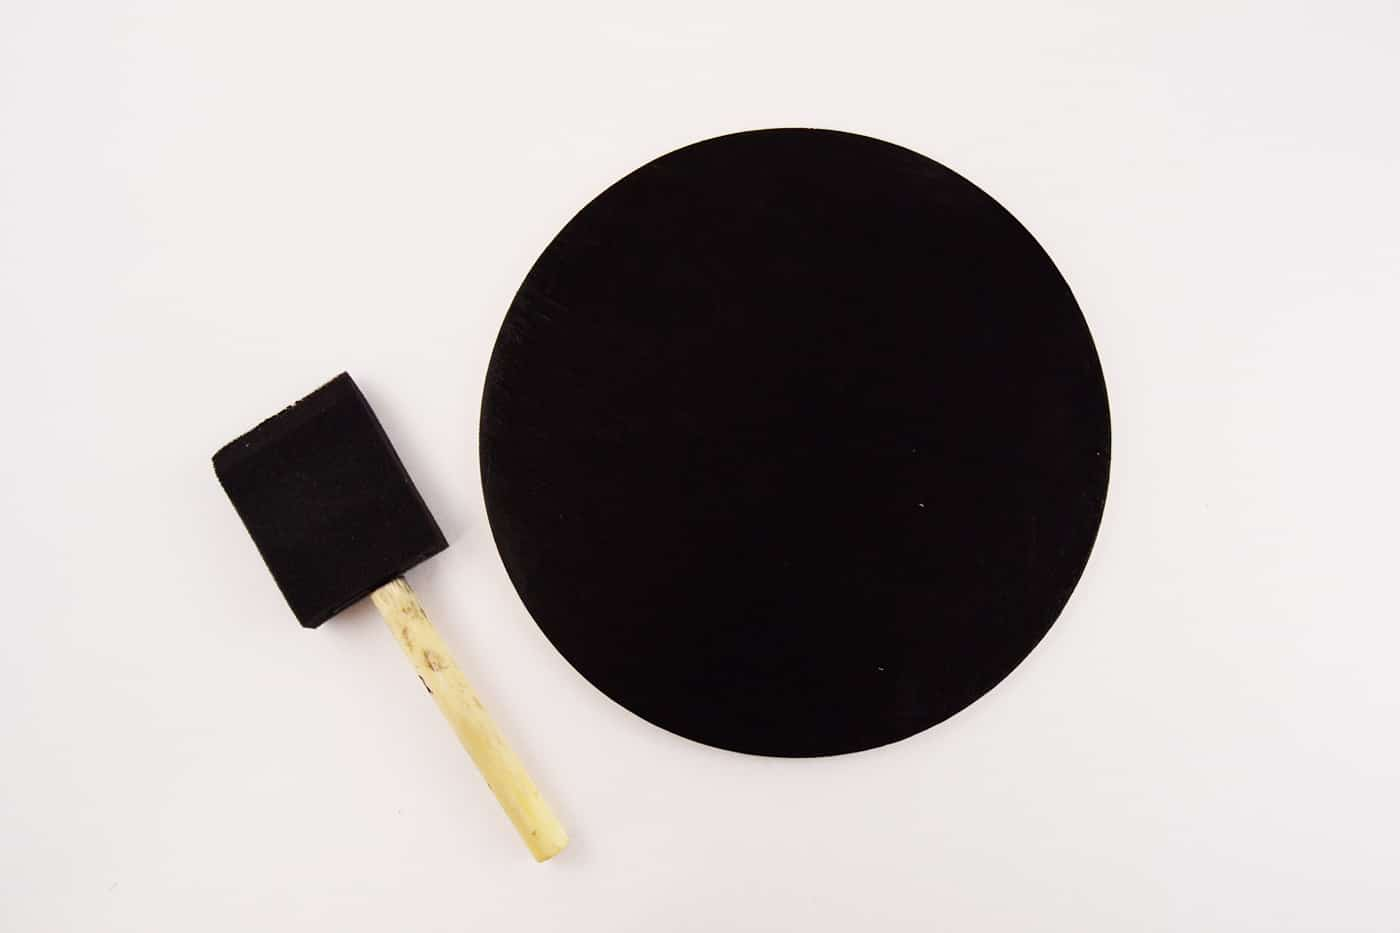 Wood circle painted black with a foam brush laying next to it